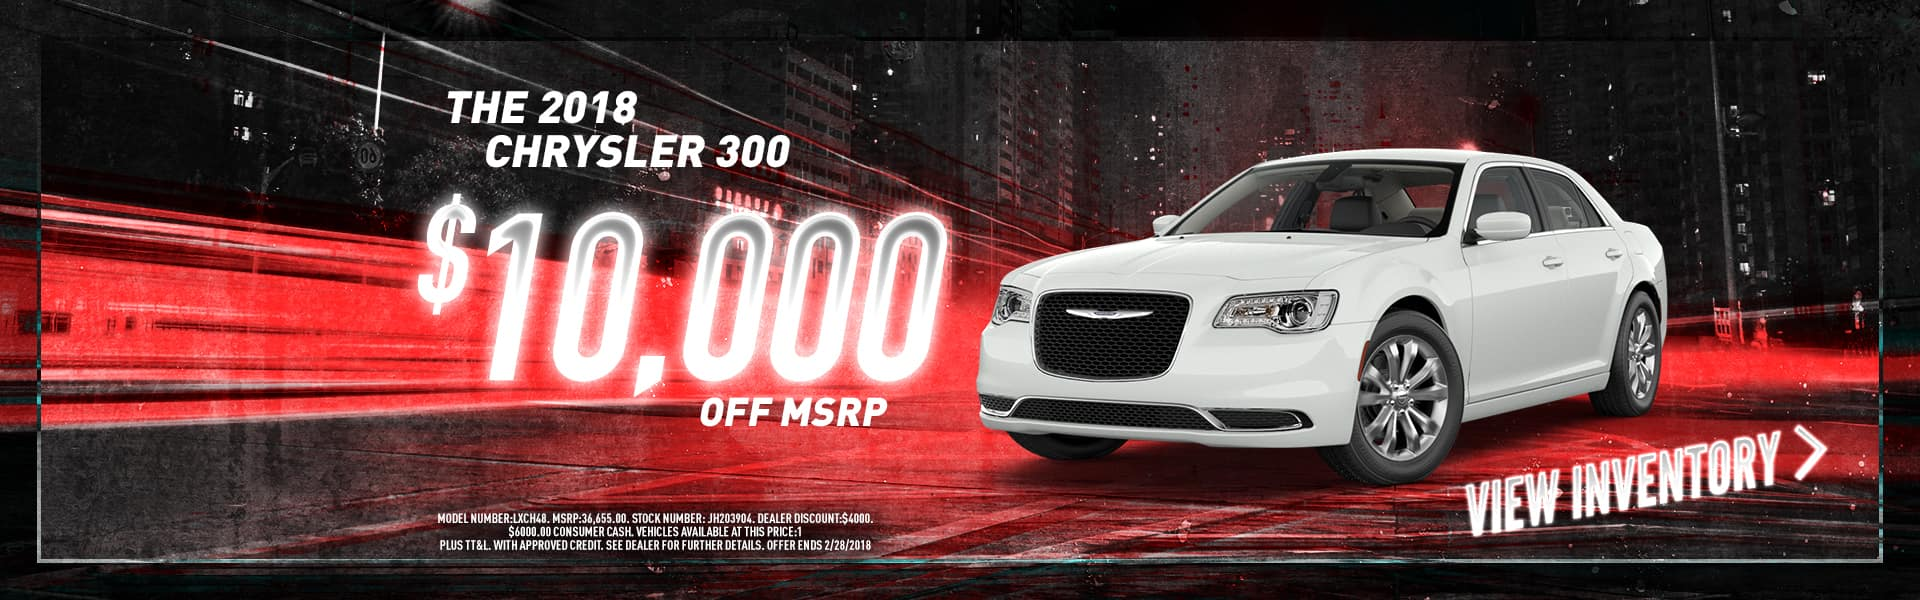 beaumont-2018-chrysler-300-for-sale